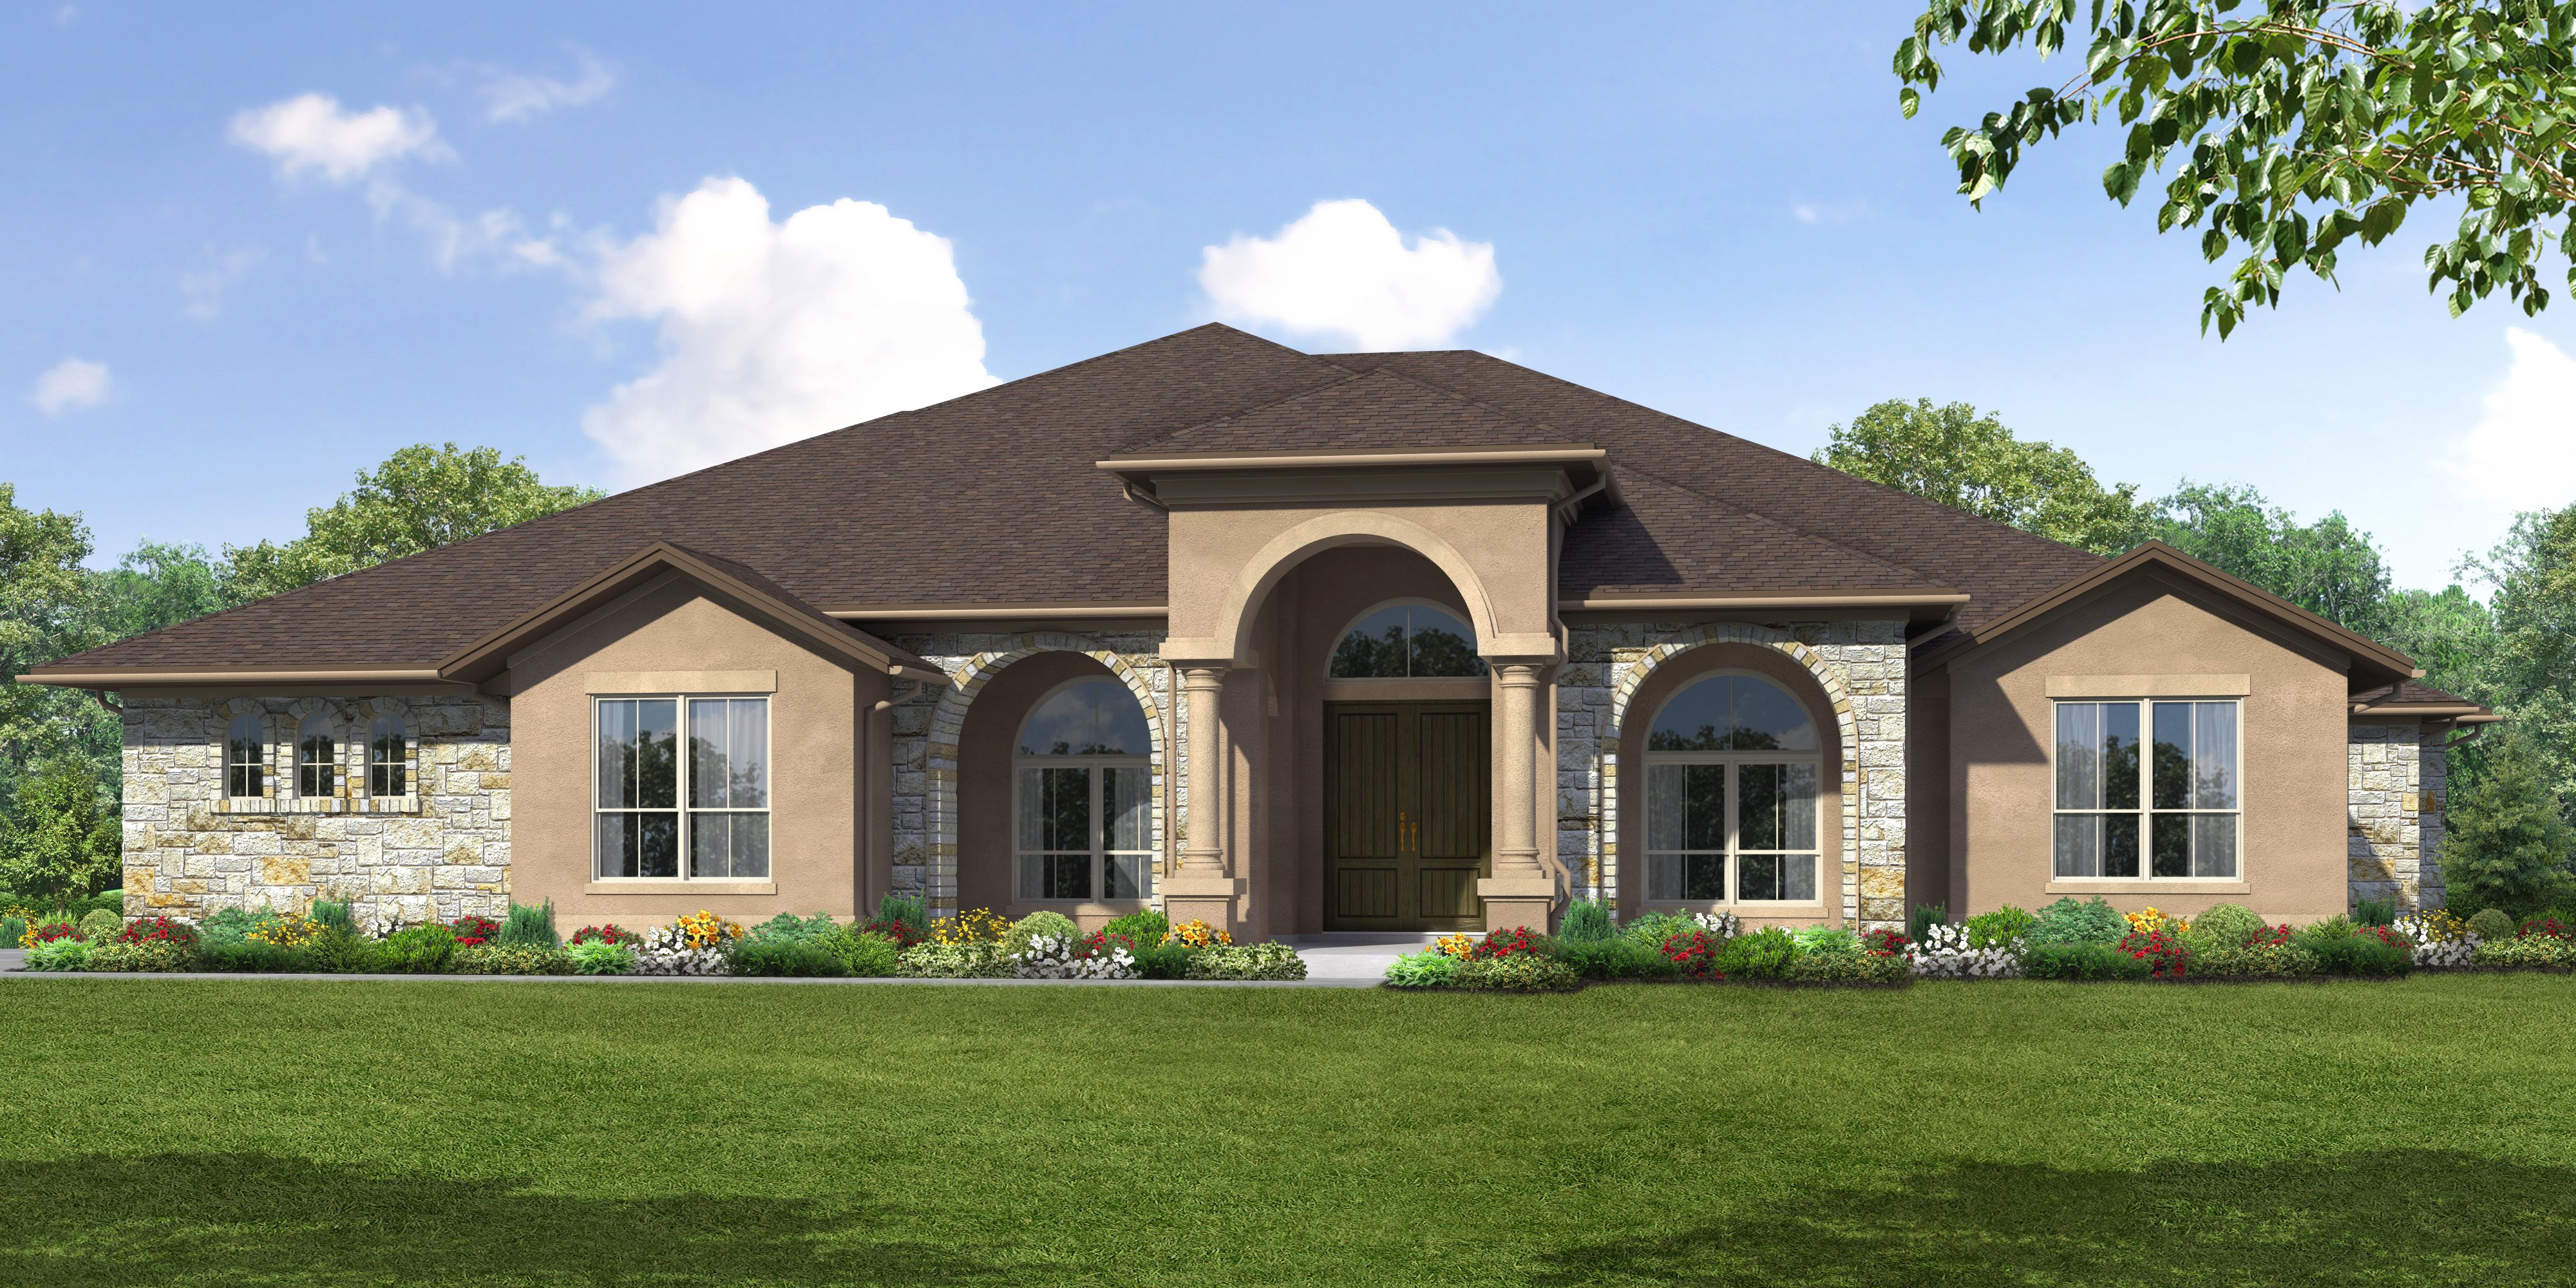 Jacobs homes crystal falls crystal falls 1068948 for Crystal falls builders